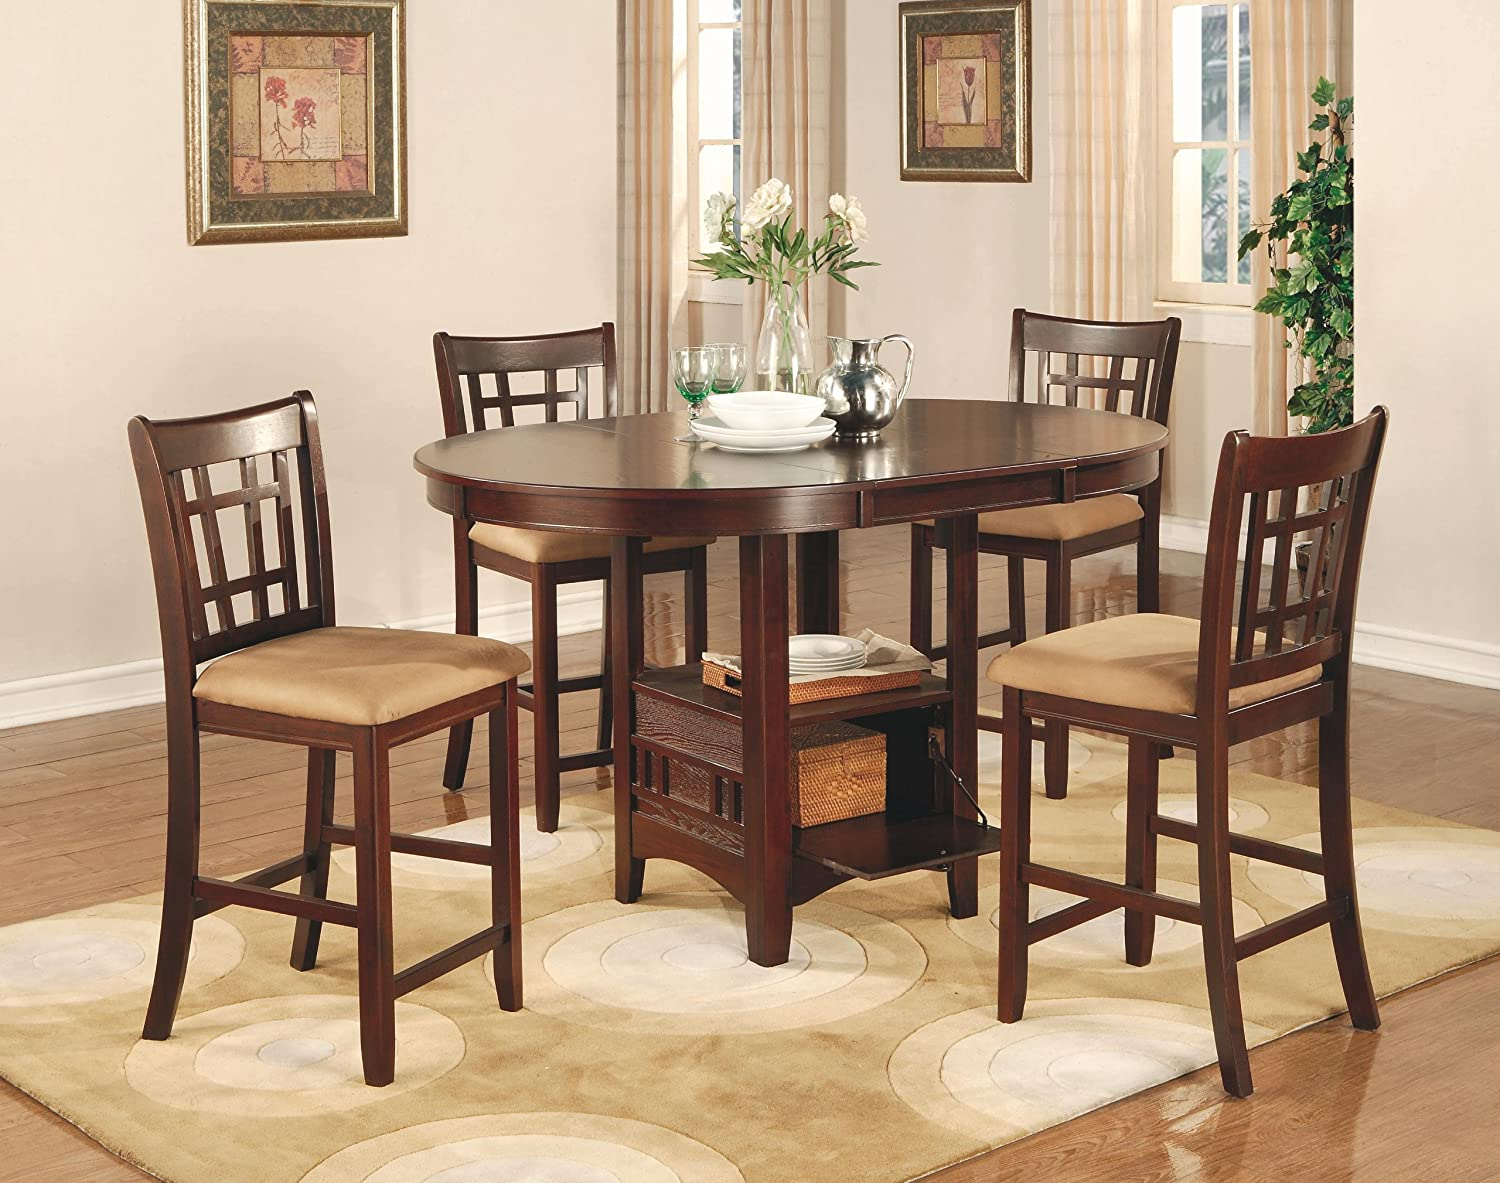 Amazon.com: Coaster Lavon 5 Piece Counter Table And Chair Set In Cherry: Dining  Room Furniture Sets: Kitchen U0026 Dining Part 62